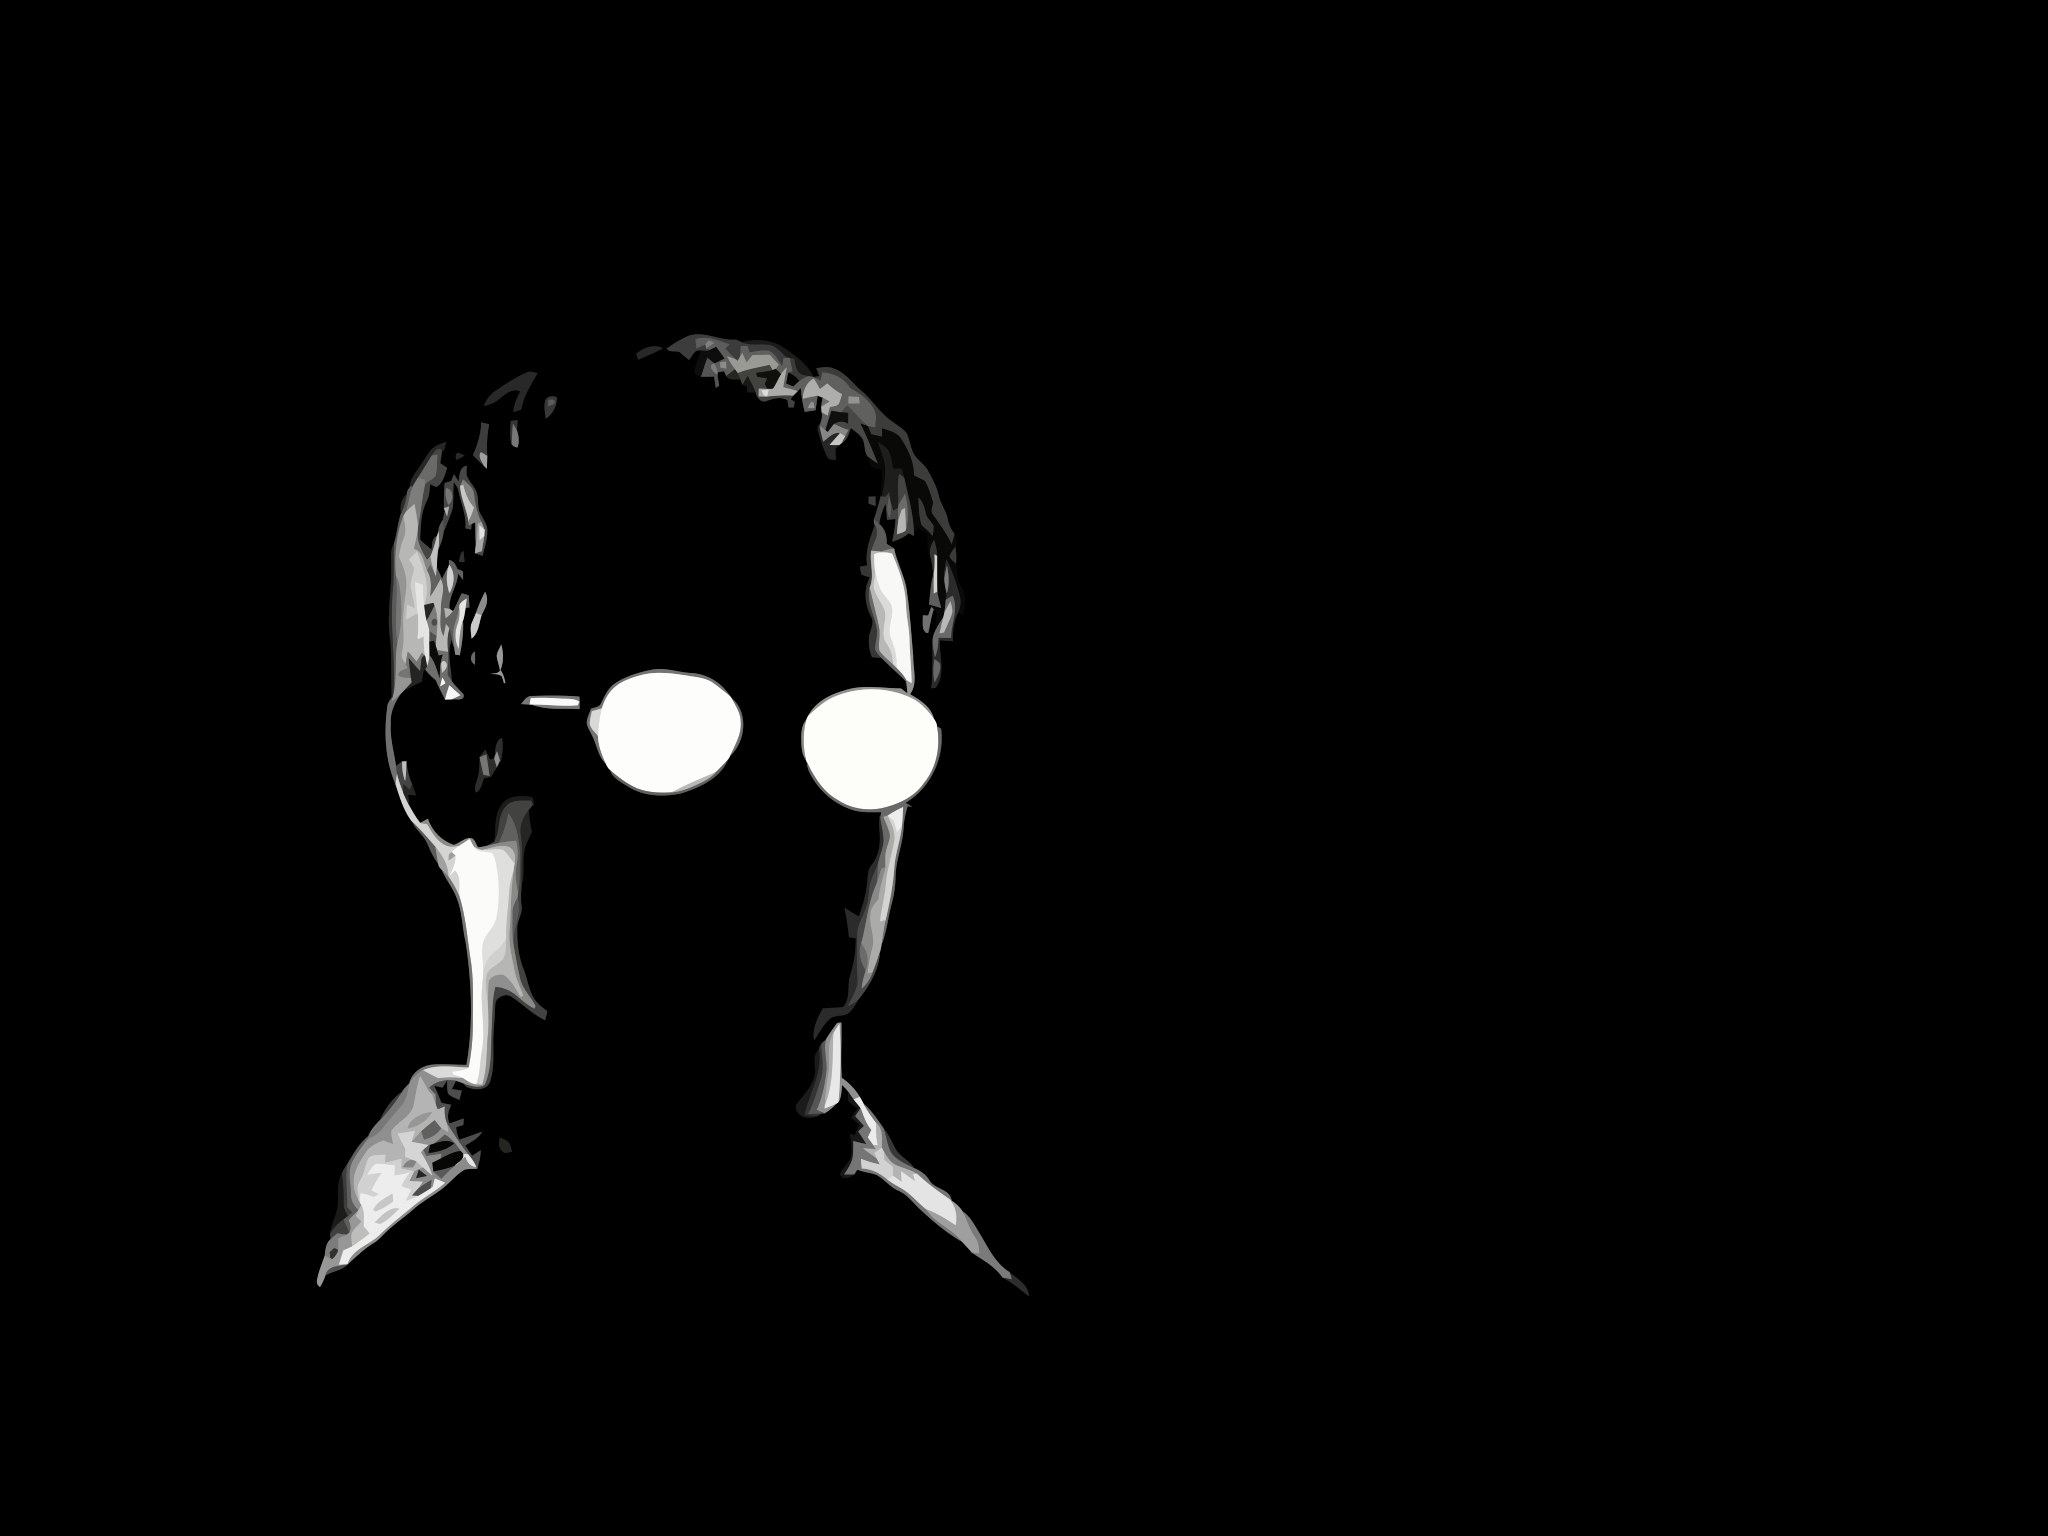 Sin city elijah wood wallpapers